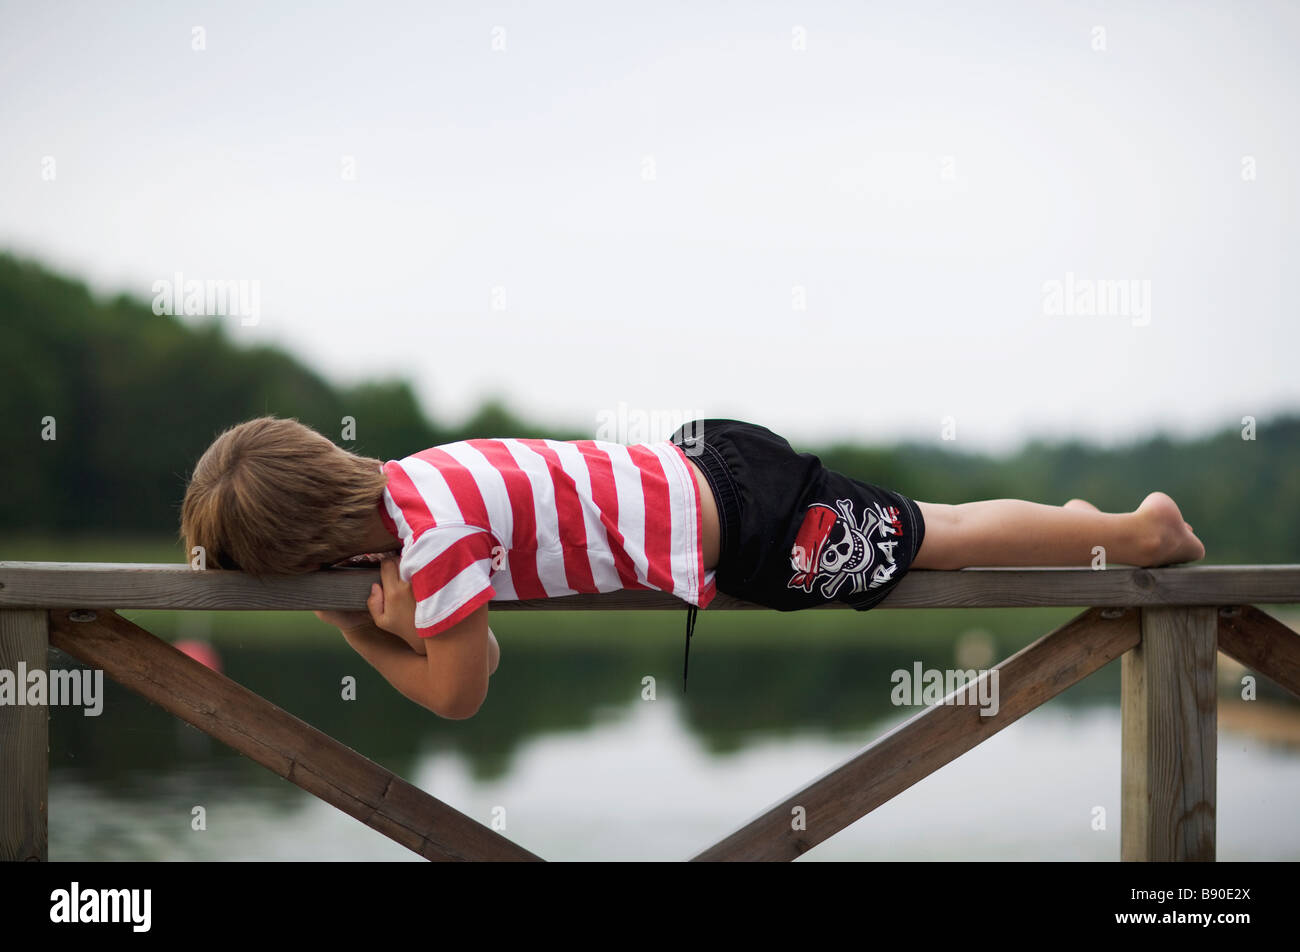 A boy lying on a fence Sweden. - Stock Image